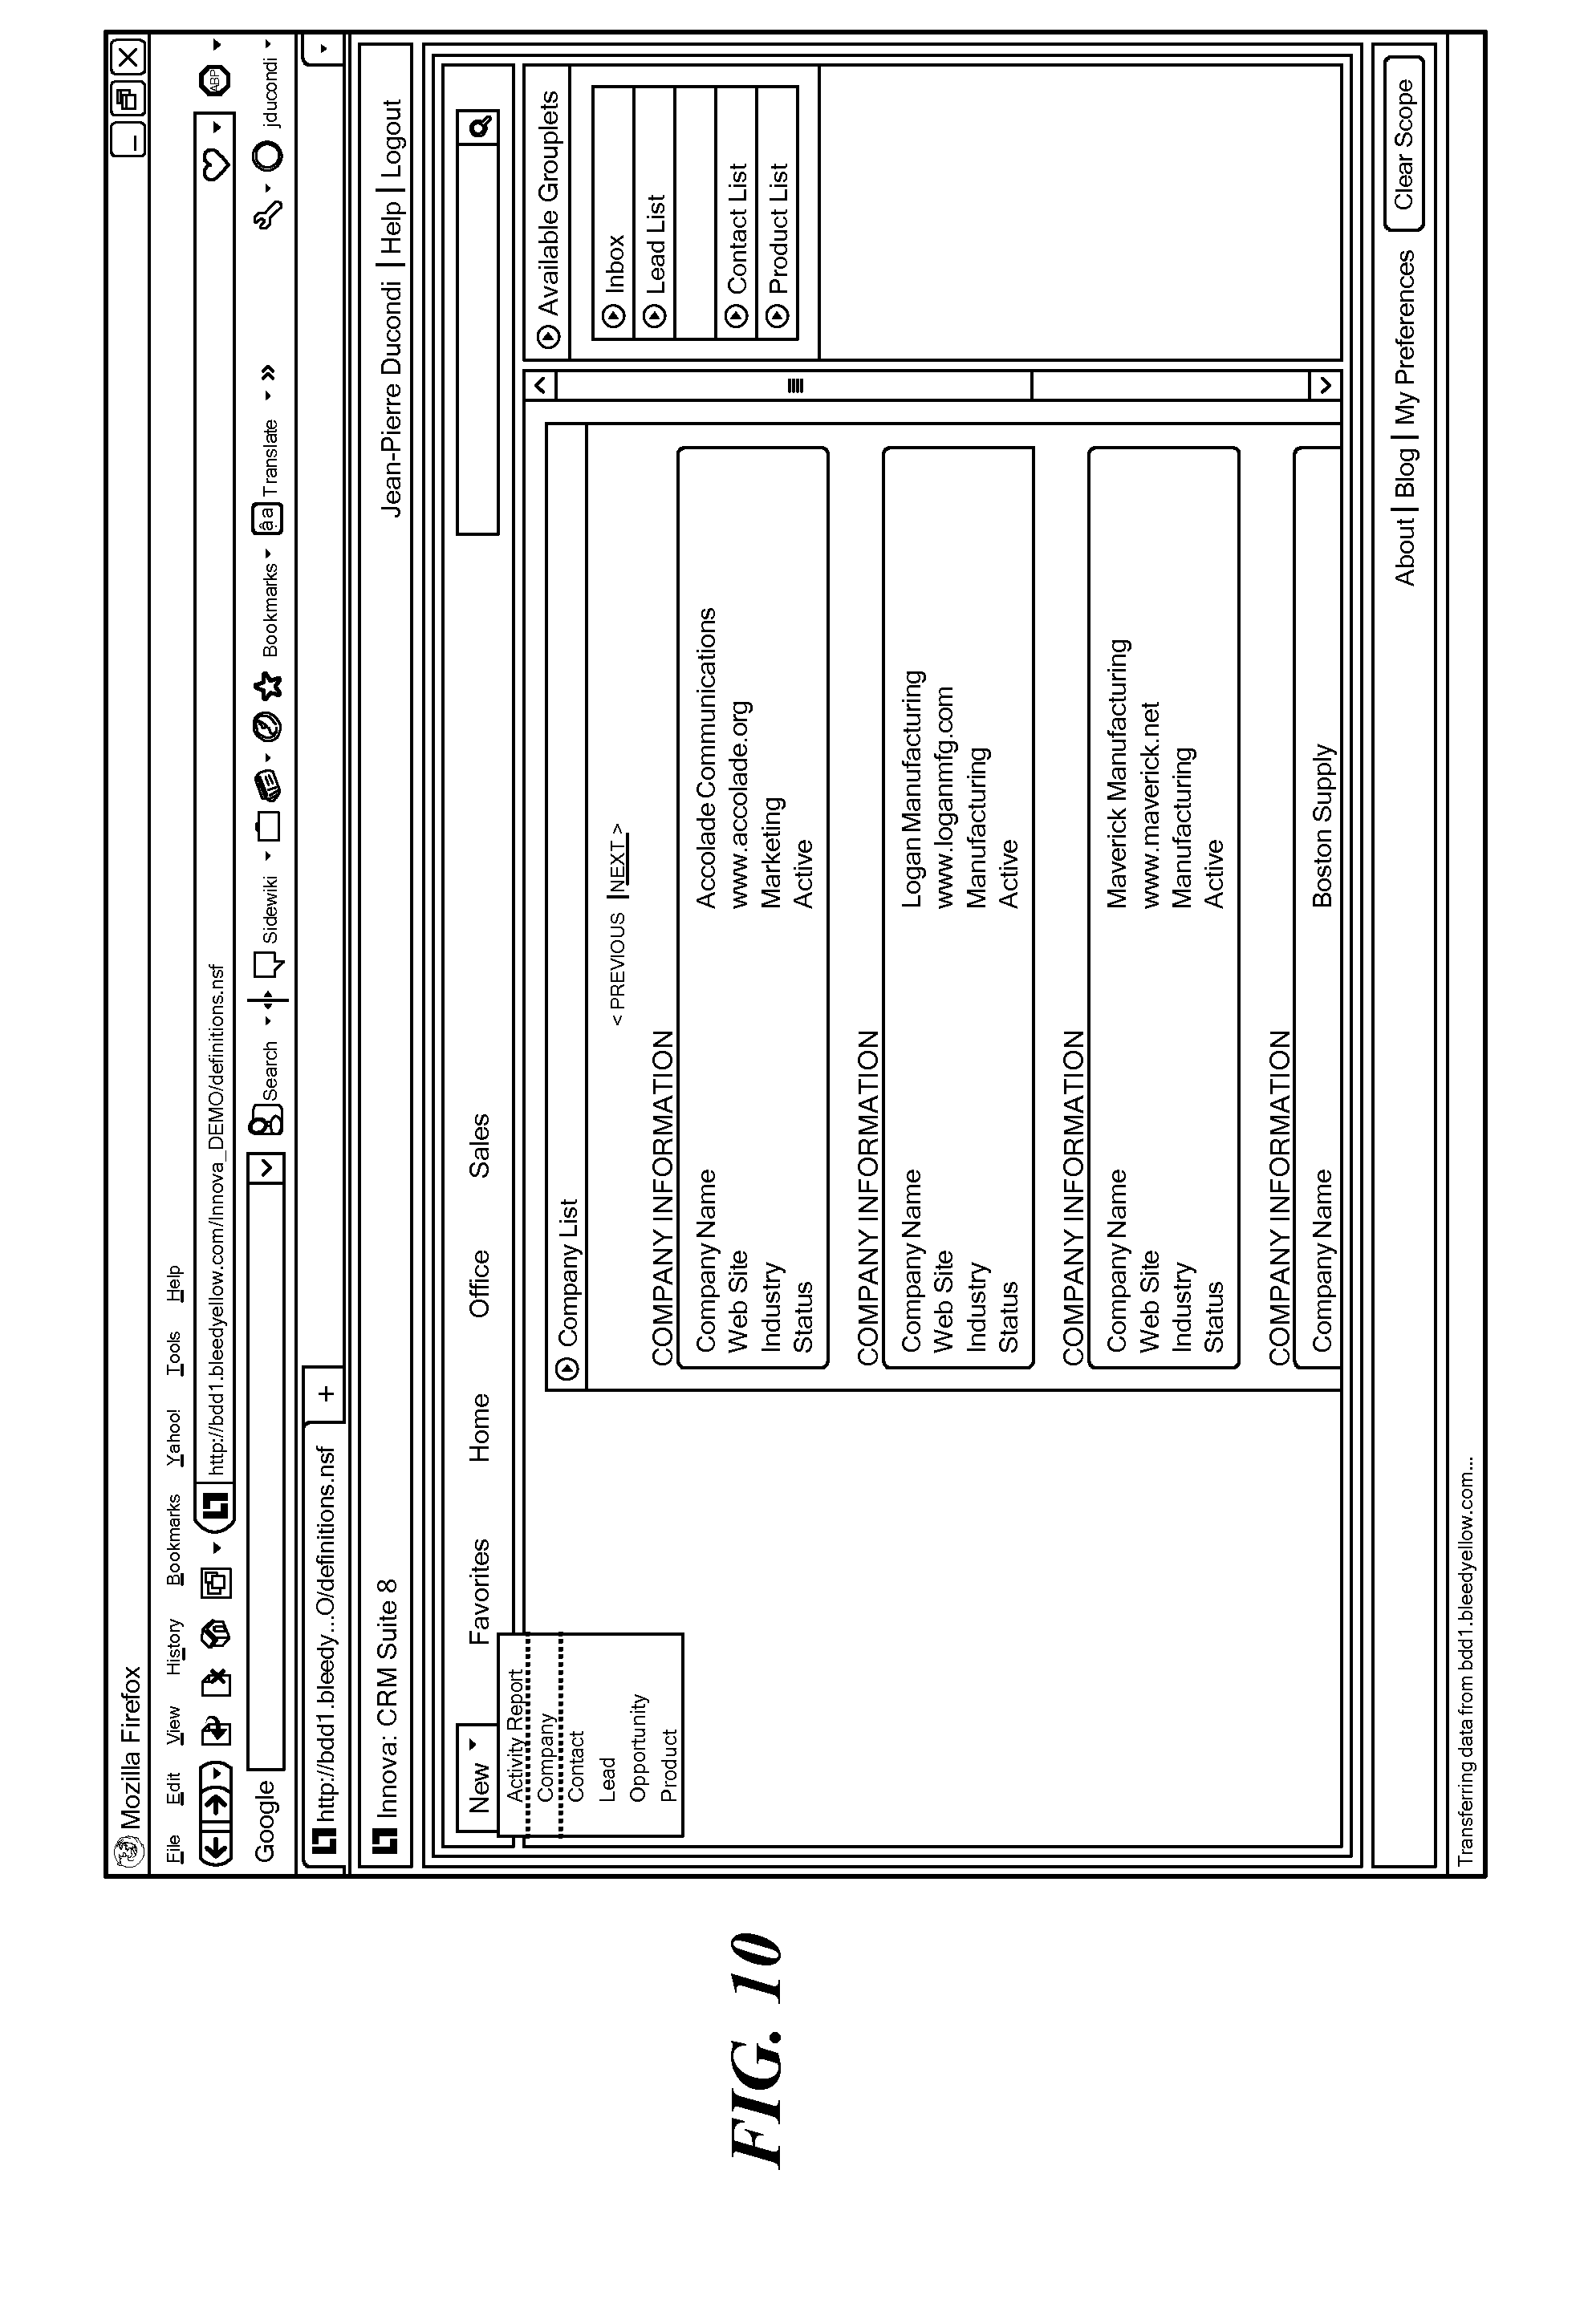 Customized Invoices Word Patent Us  Apparatus And Method For Constructing Data  Payment Of Invoice Pdf with Car Dealer Invoice Price List Word Patent Drawing Receipt For Sale Of Car Template Excel